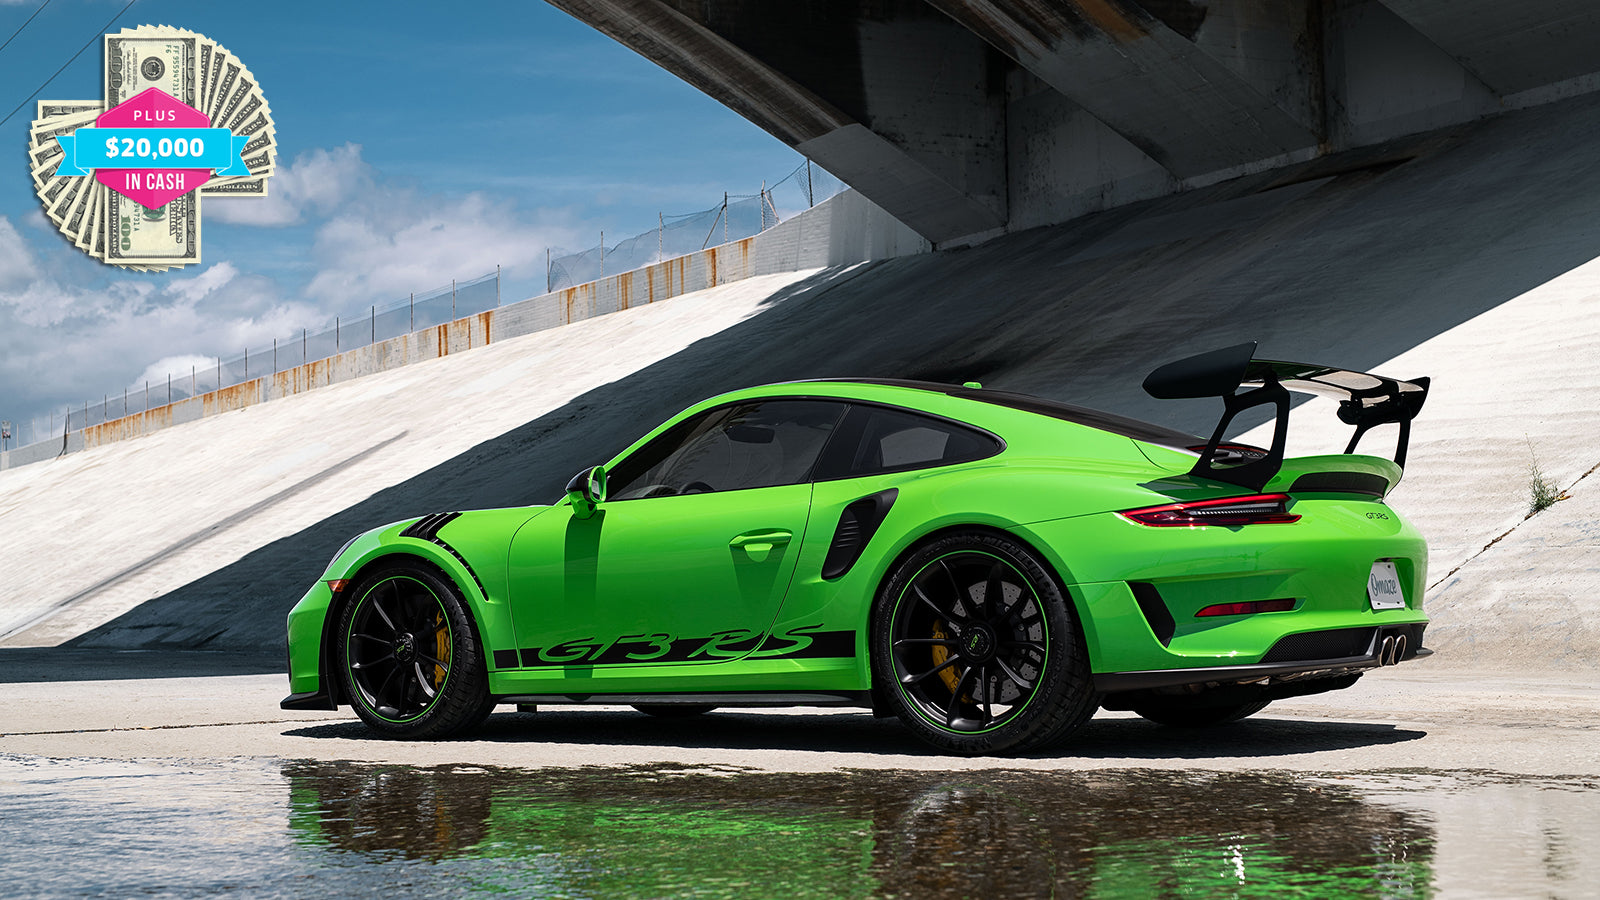 Win A Brand New Porsche 911 Gt3 Rs And 20 000